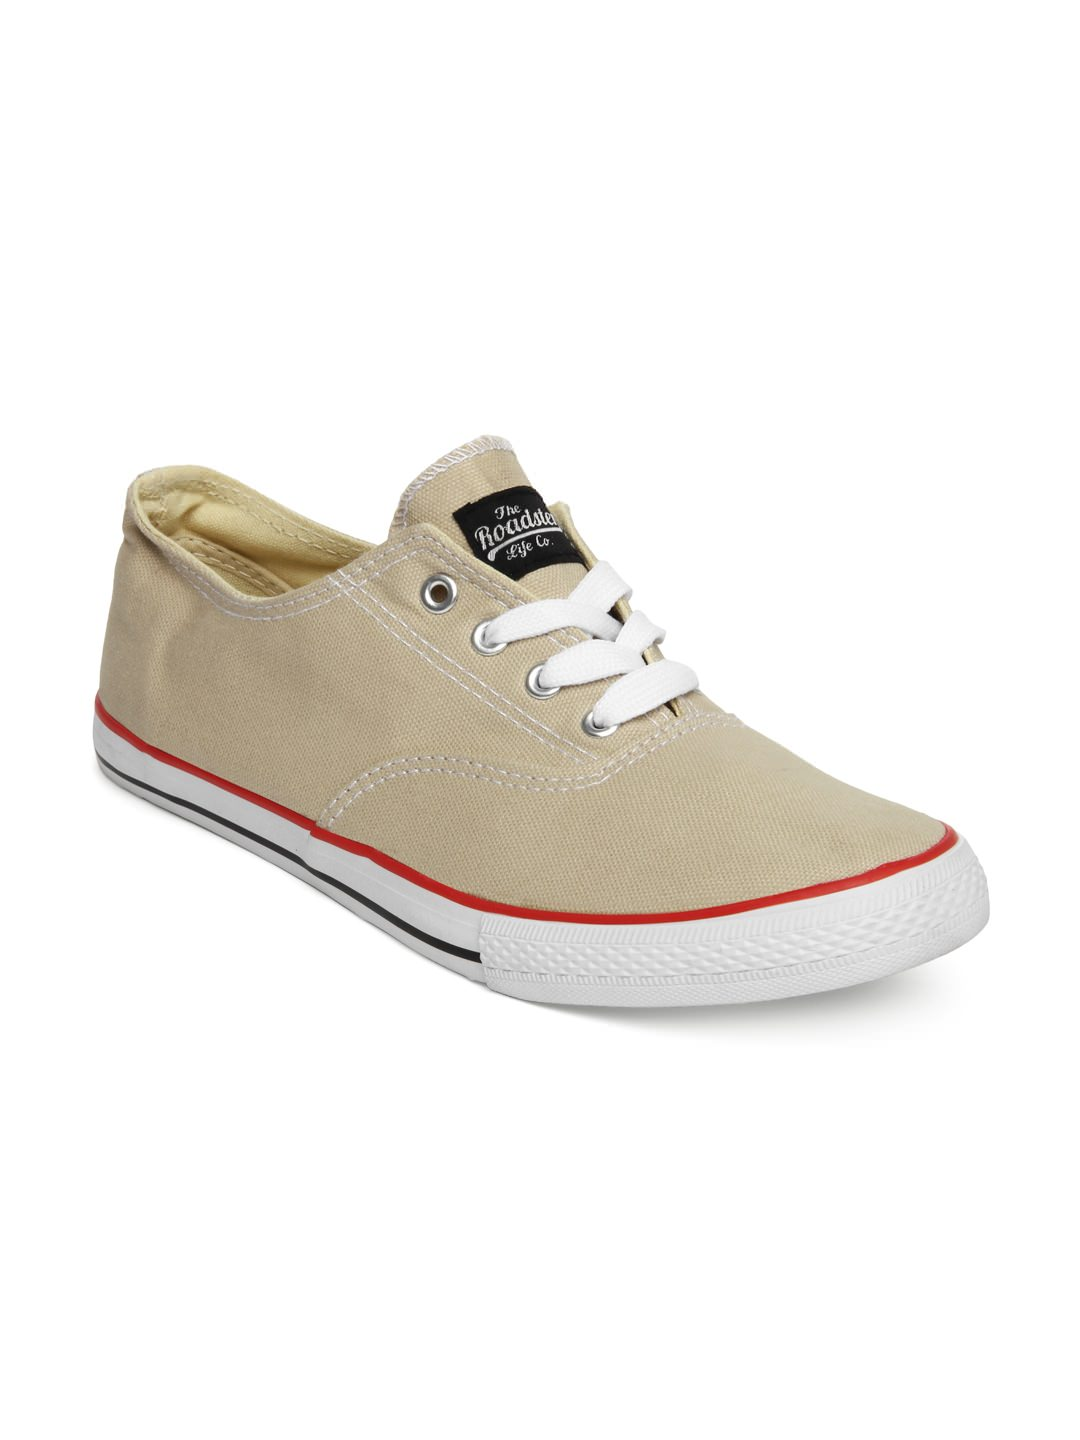 Roadster Beige Casual Shoes at Rs.719